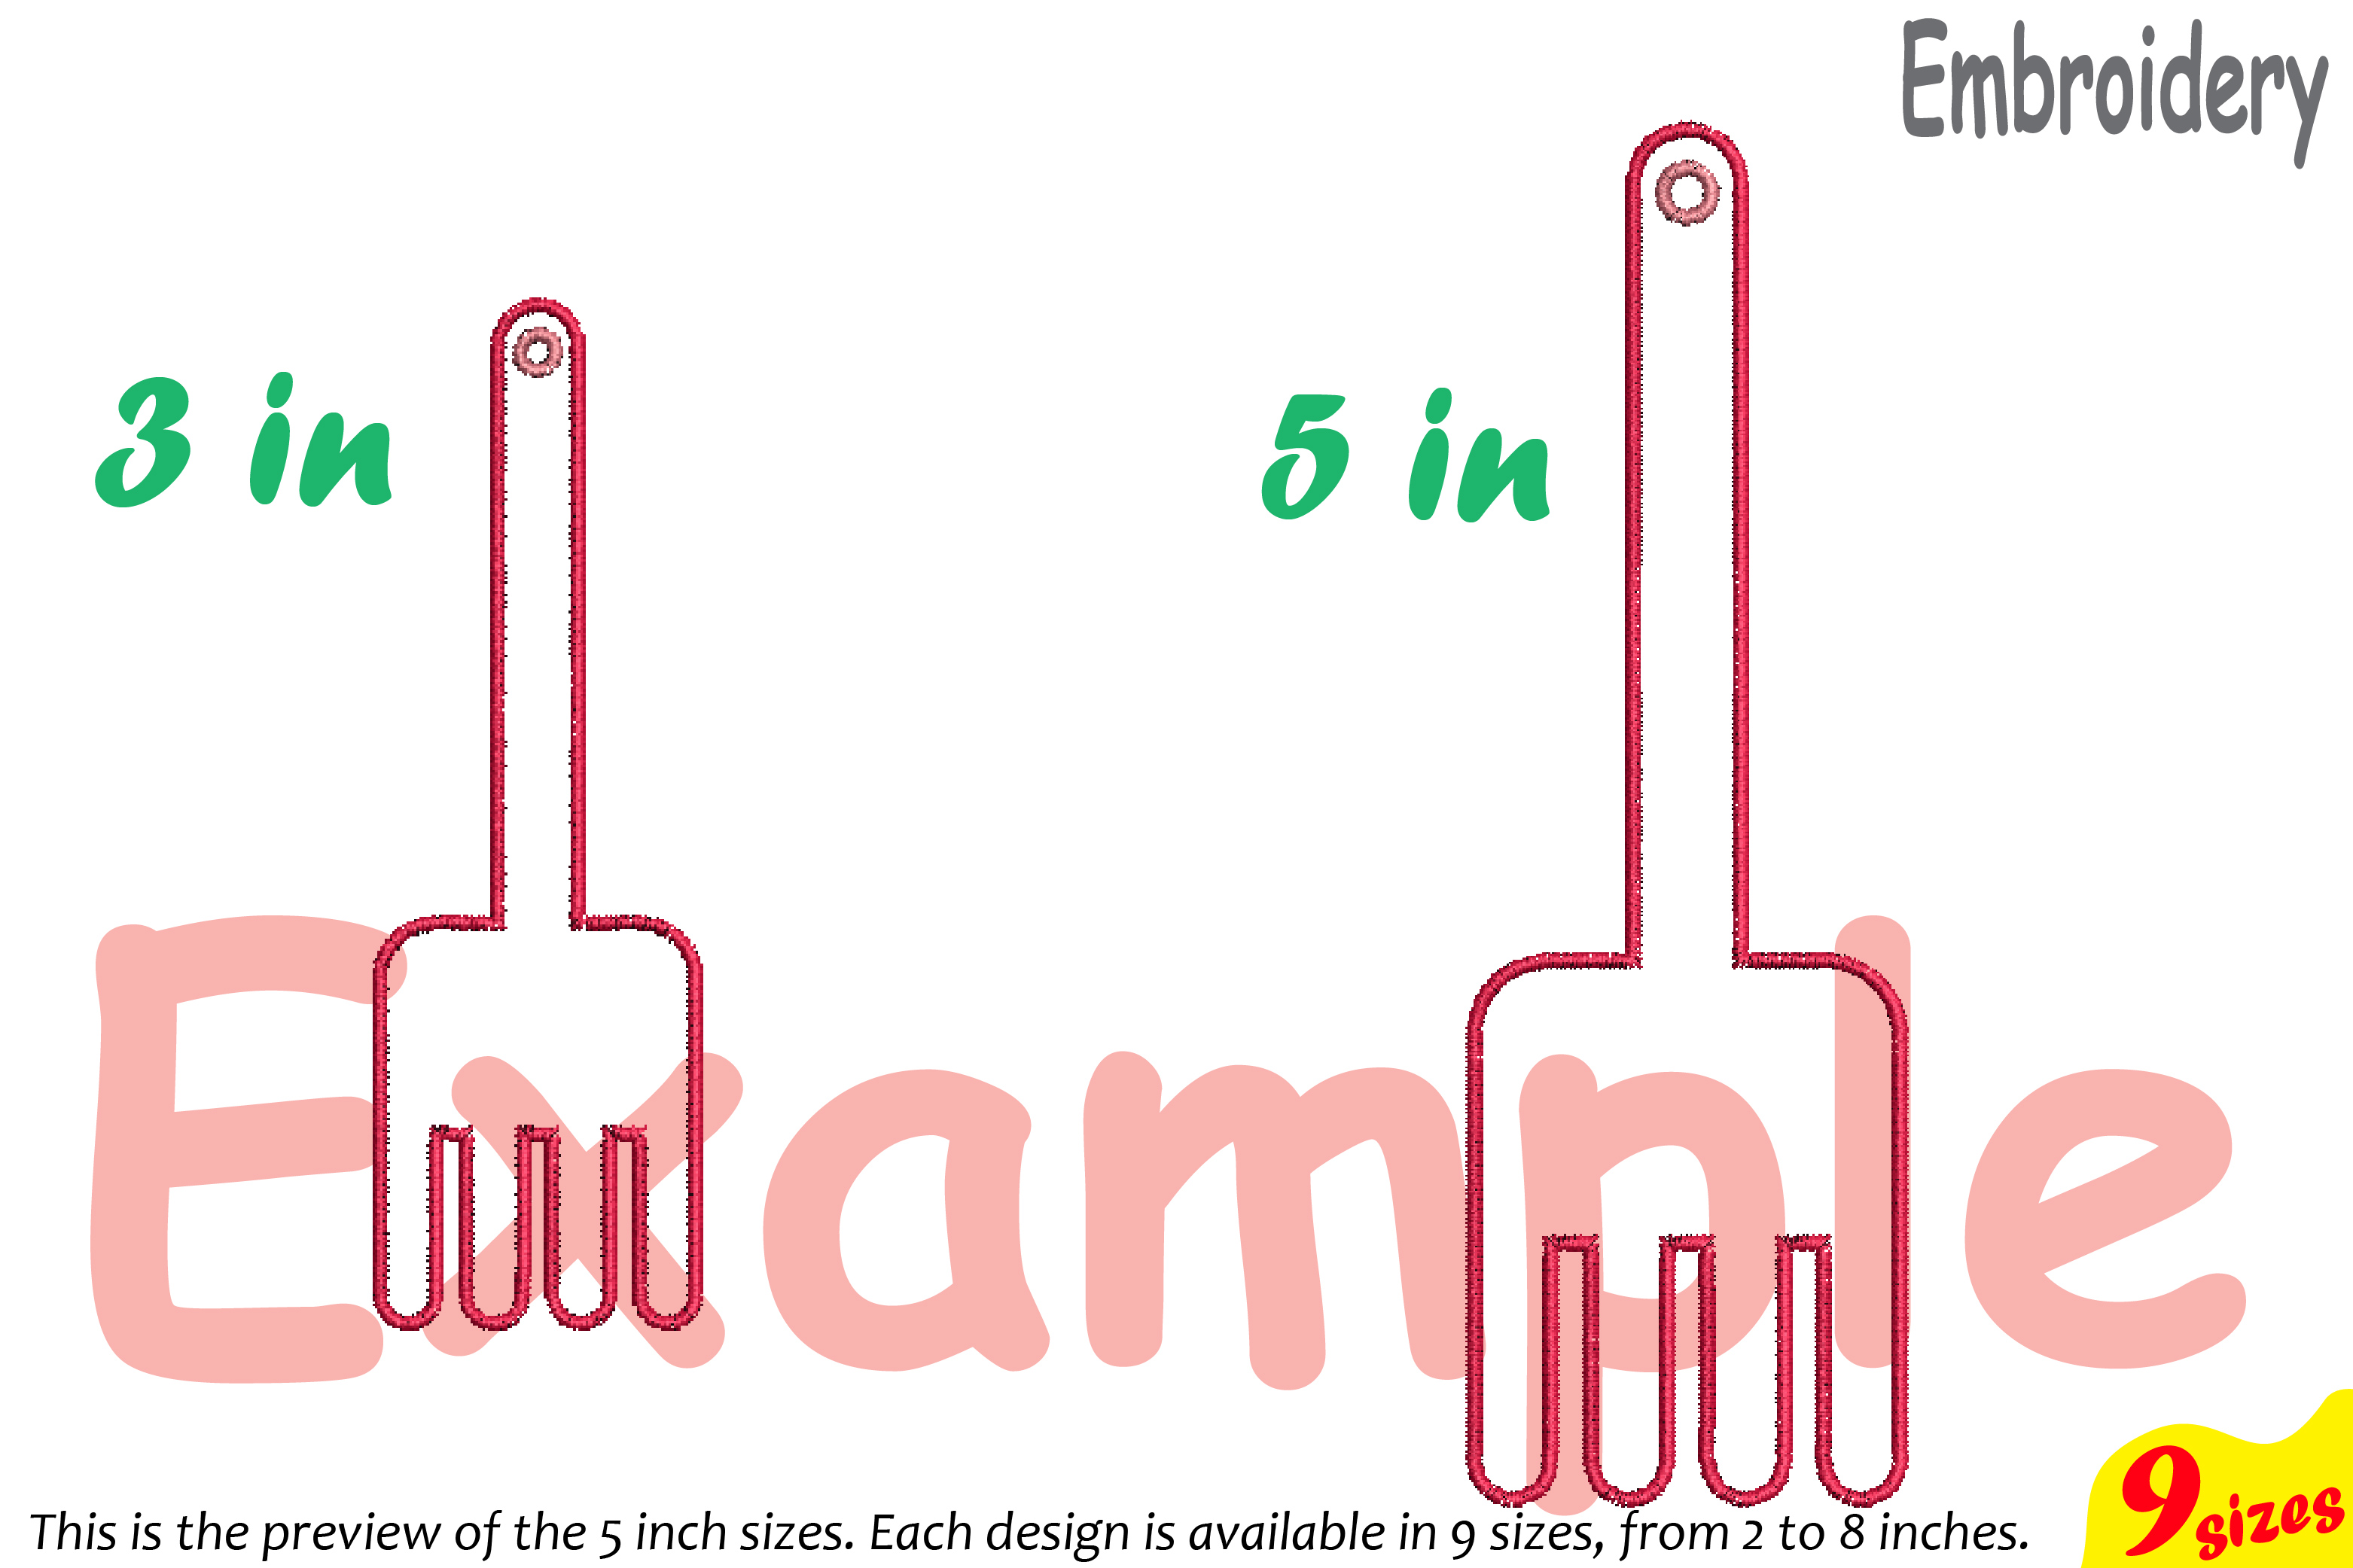 Outline Kitchen Embroidery Design Machine Instant Download Commercial Use digital file icon symbol sign Chef Utensils fork spoon 178b example image 5